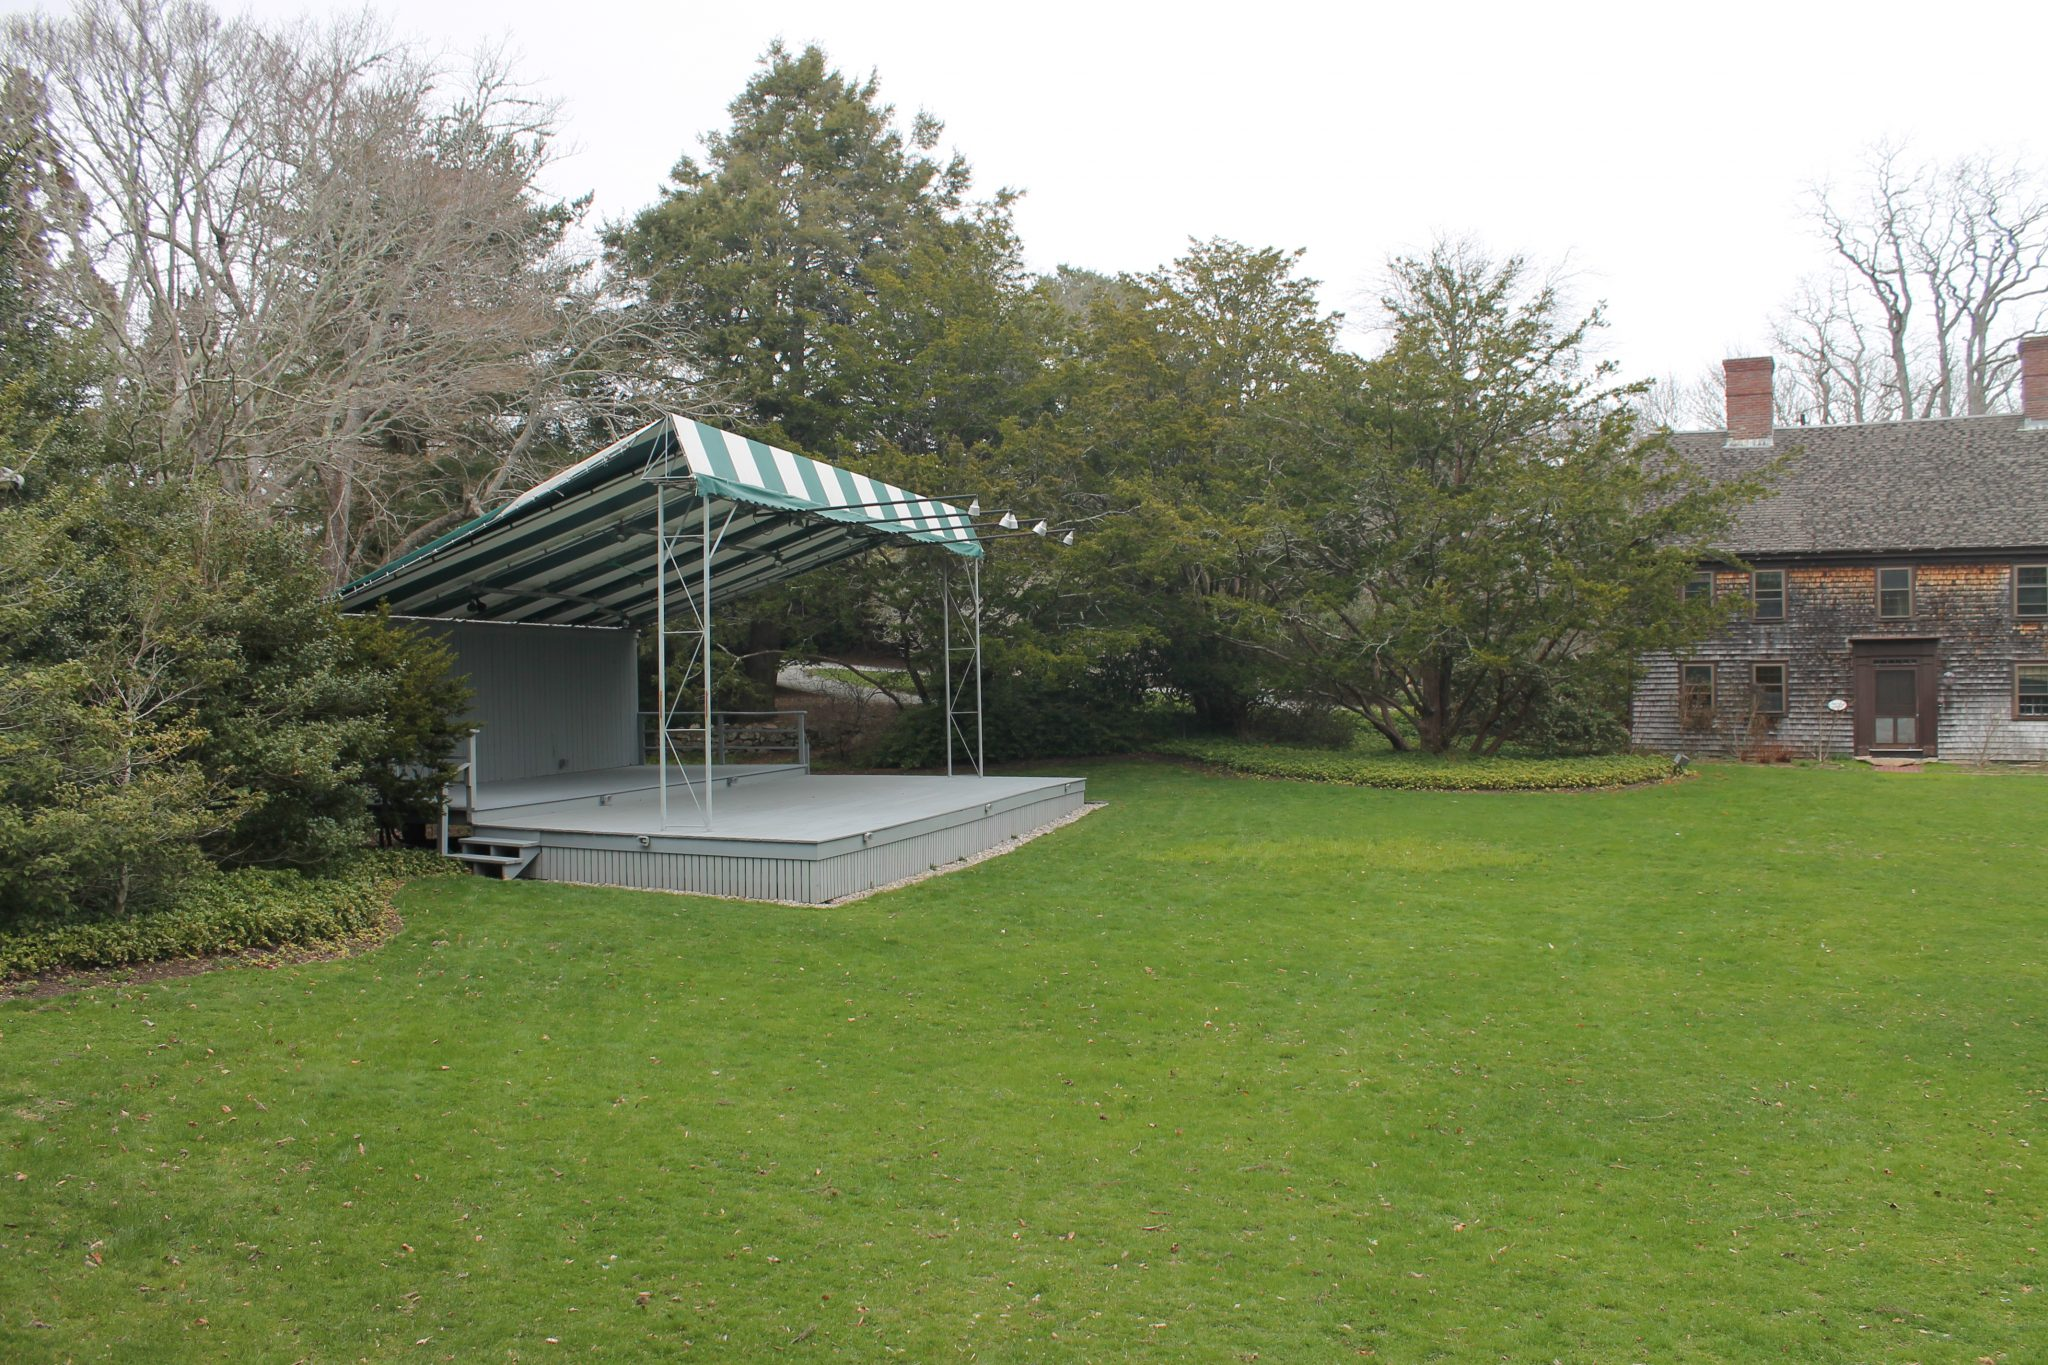 Picnic area and free children's concerts on Fridays